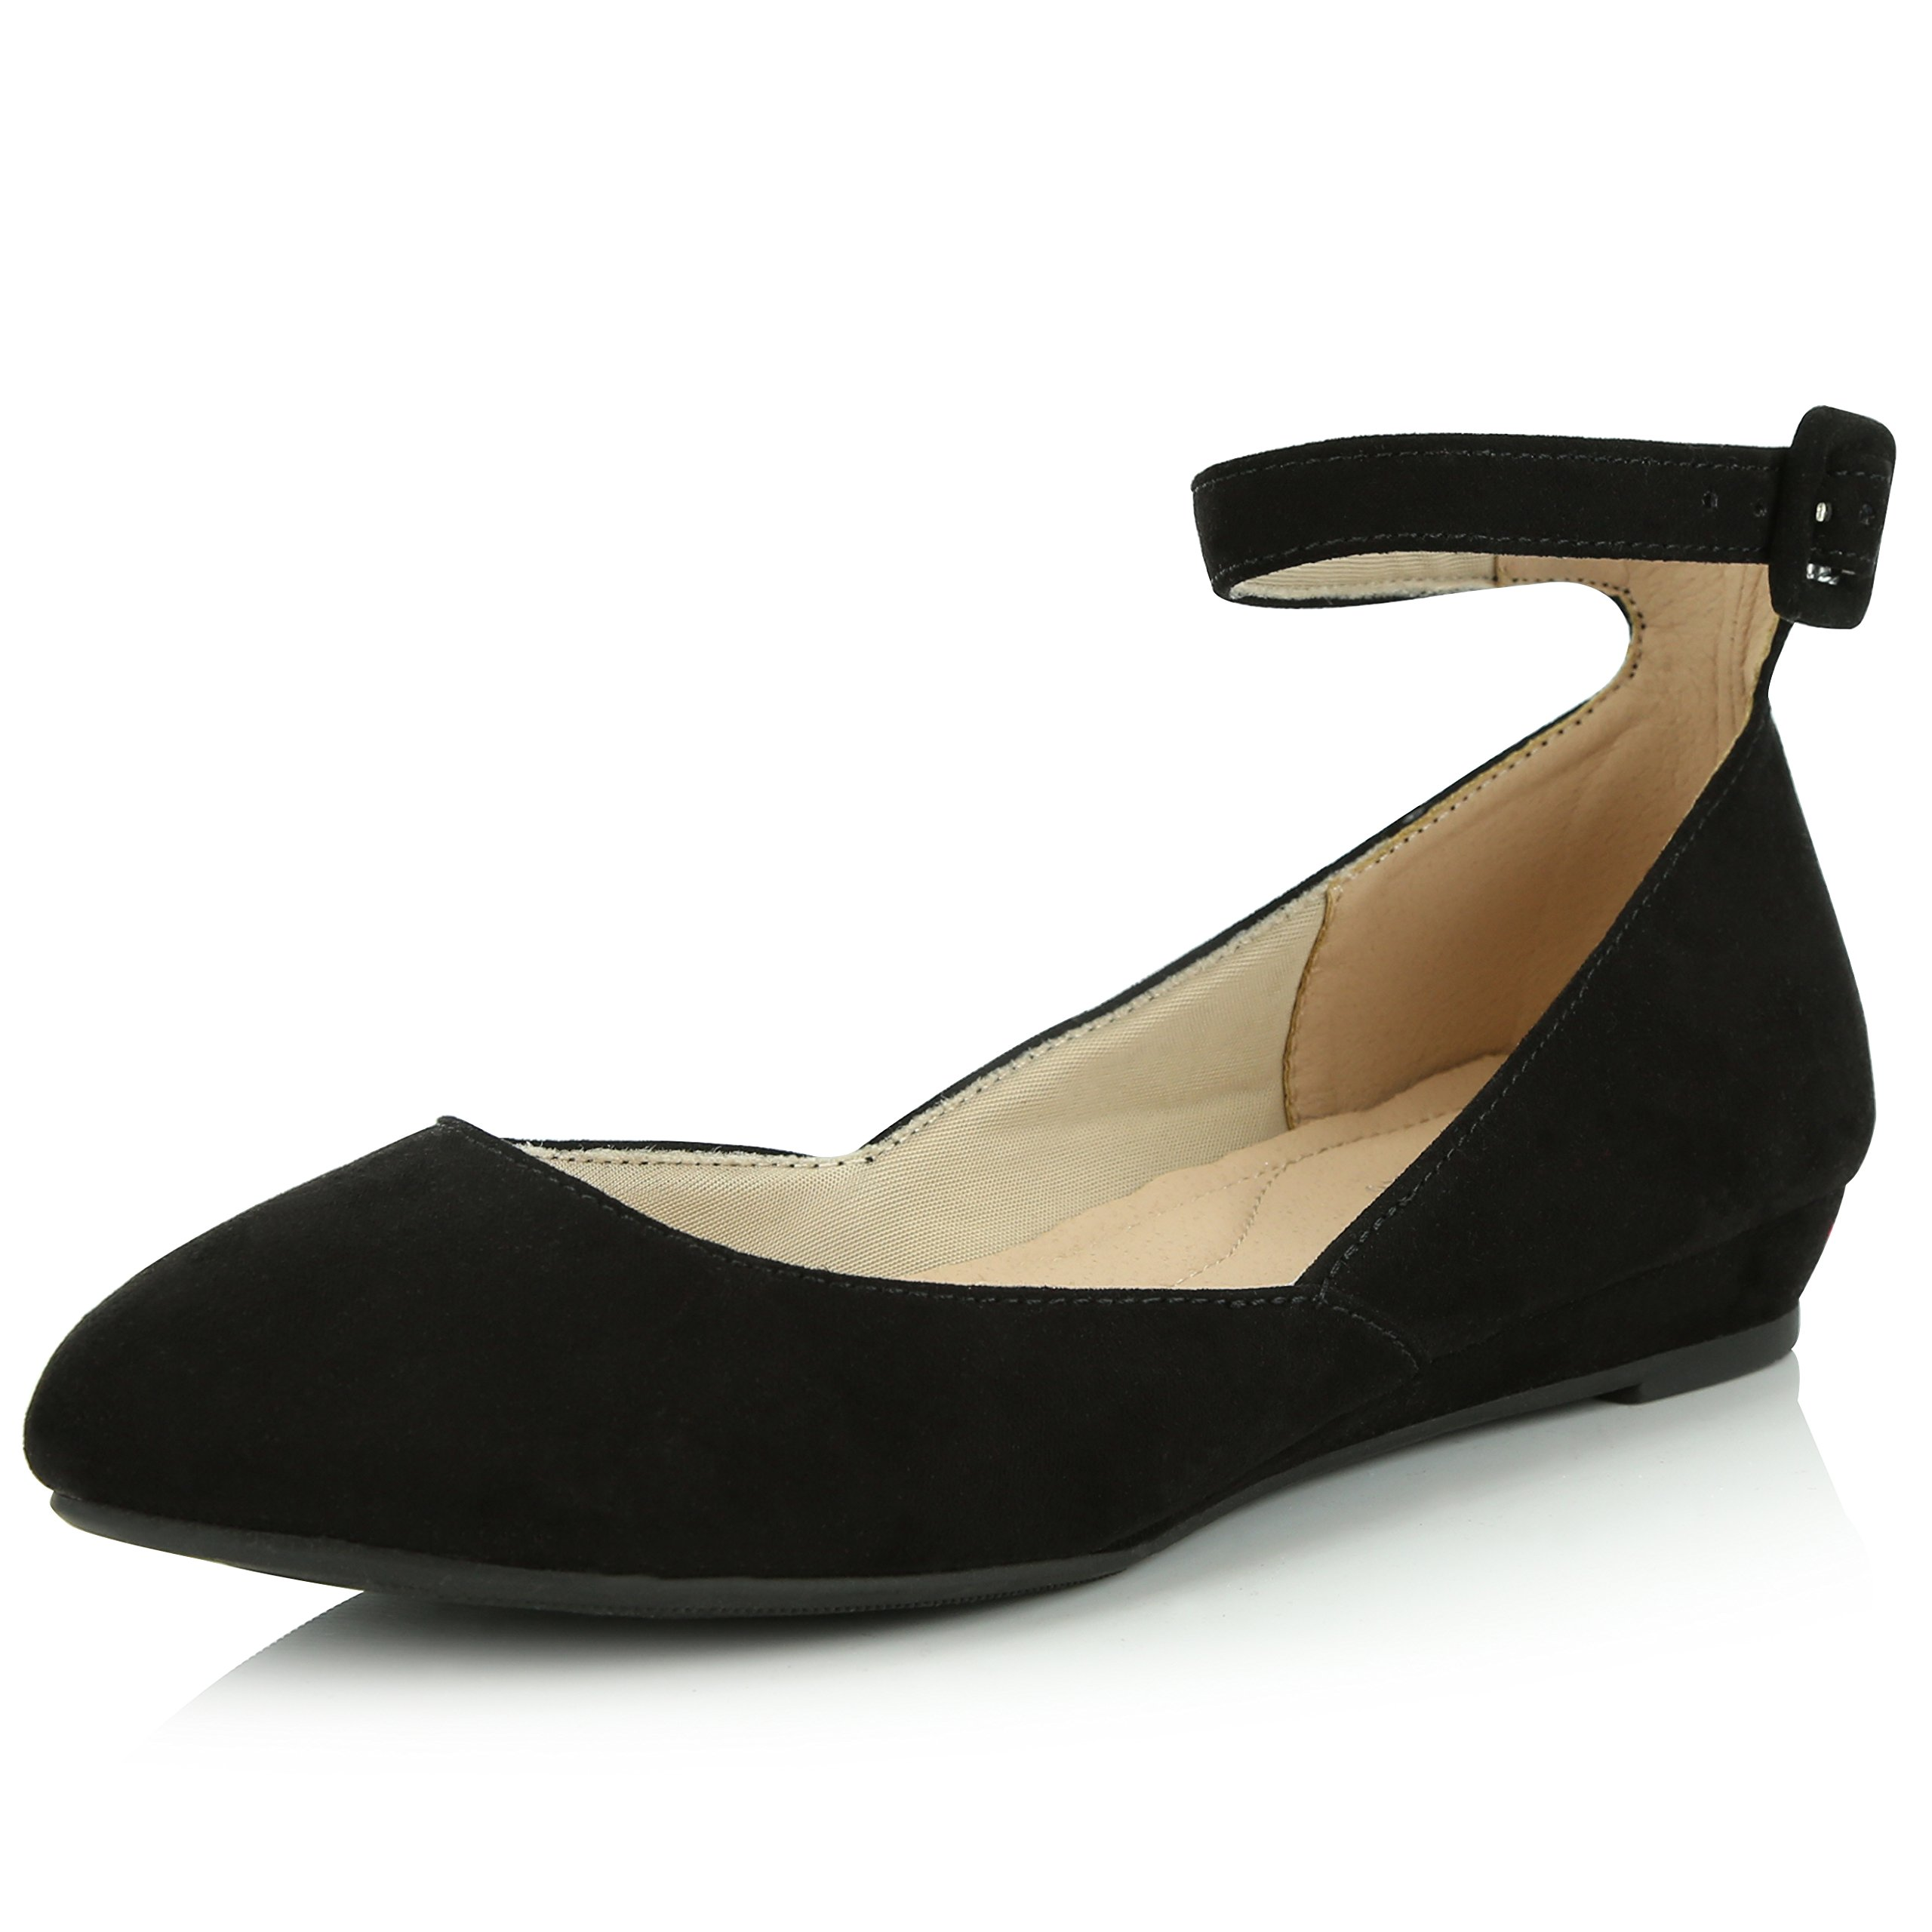 DailyShoes Women's Fashion Adjustable Ankle Strap Buckle Pointed Toe Low Wedge Flat Shoes, Black Suede, 8 B(M) US